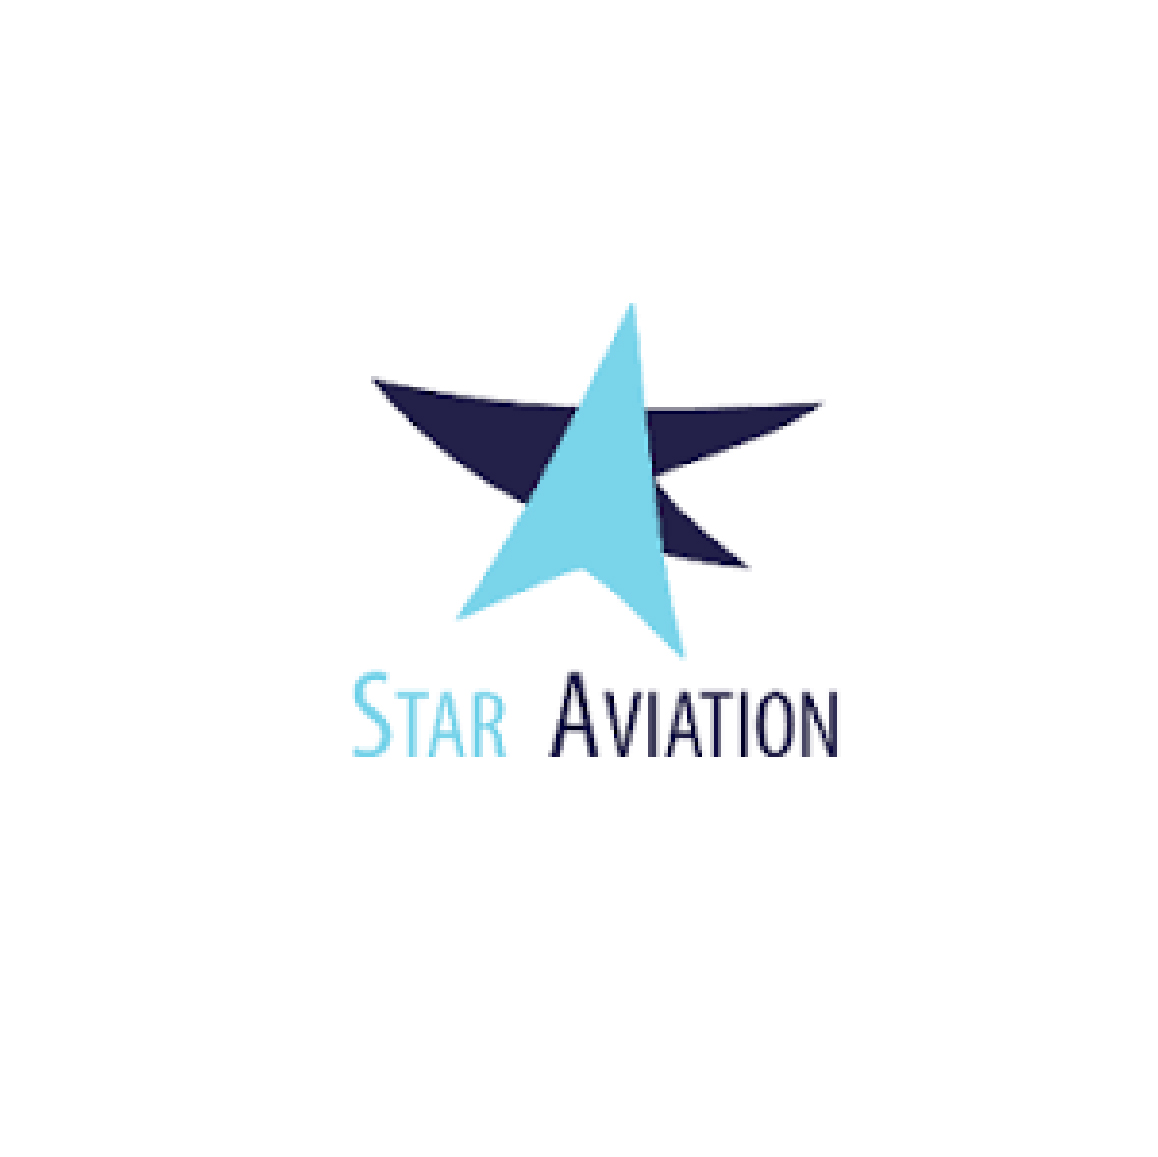 Star Aviation